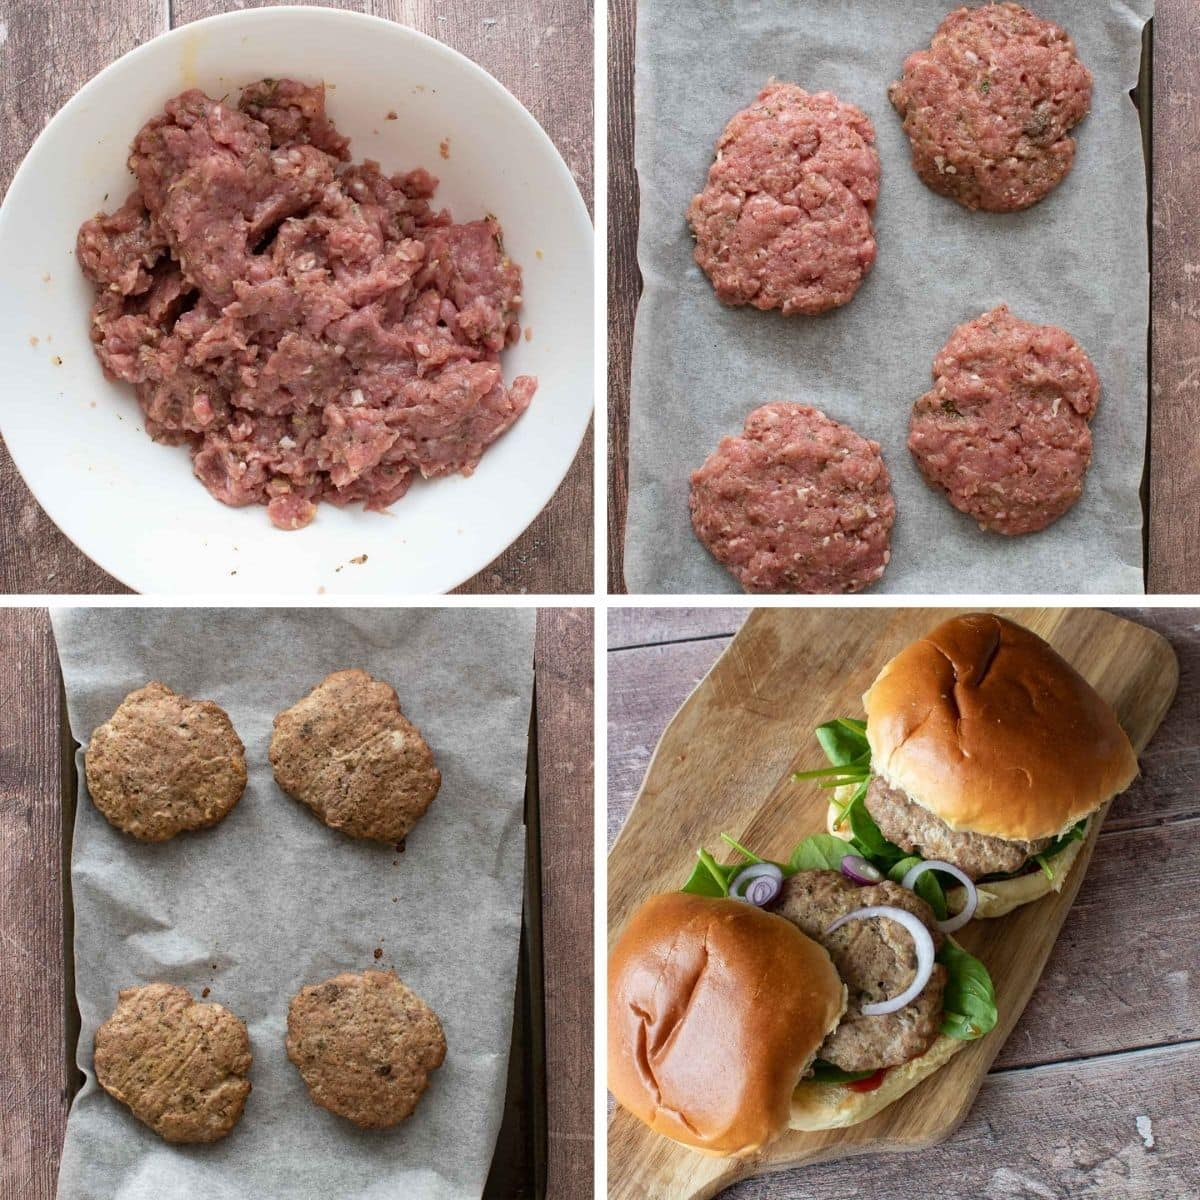 Step by step images showing how to make turkey burgers in the oven.